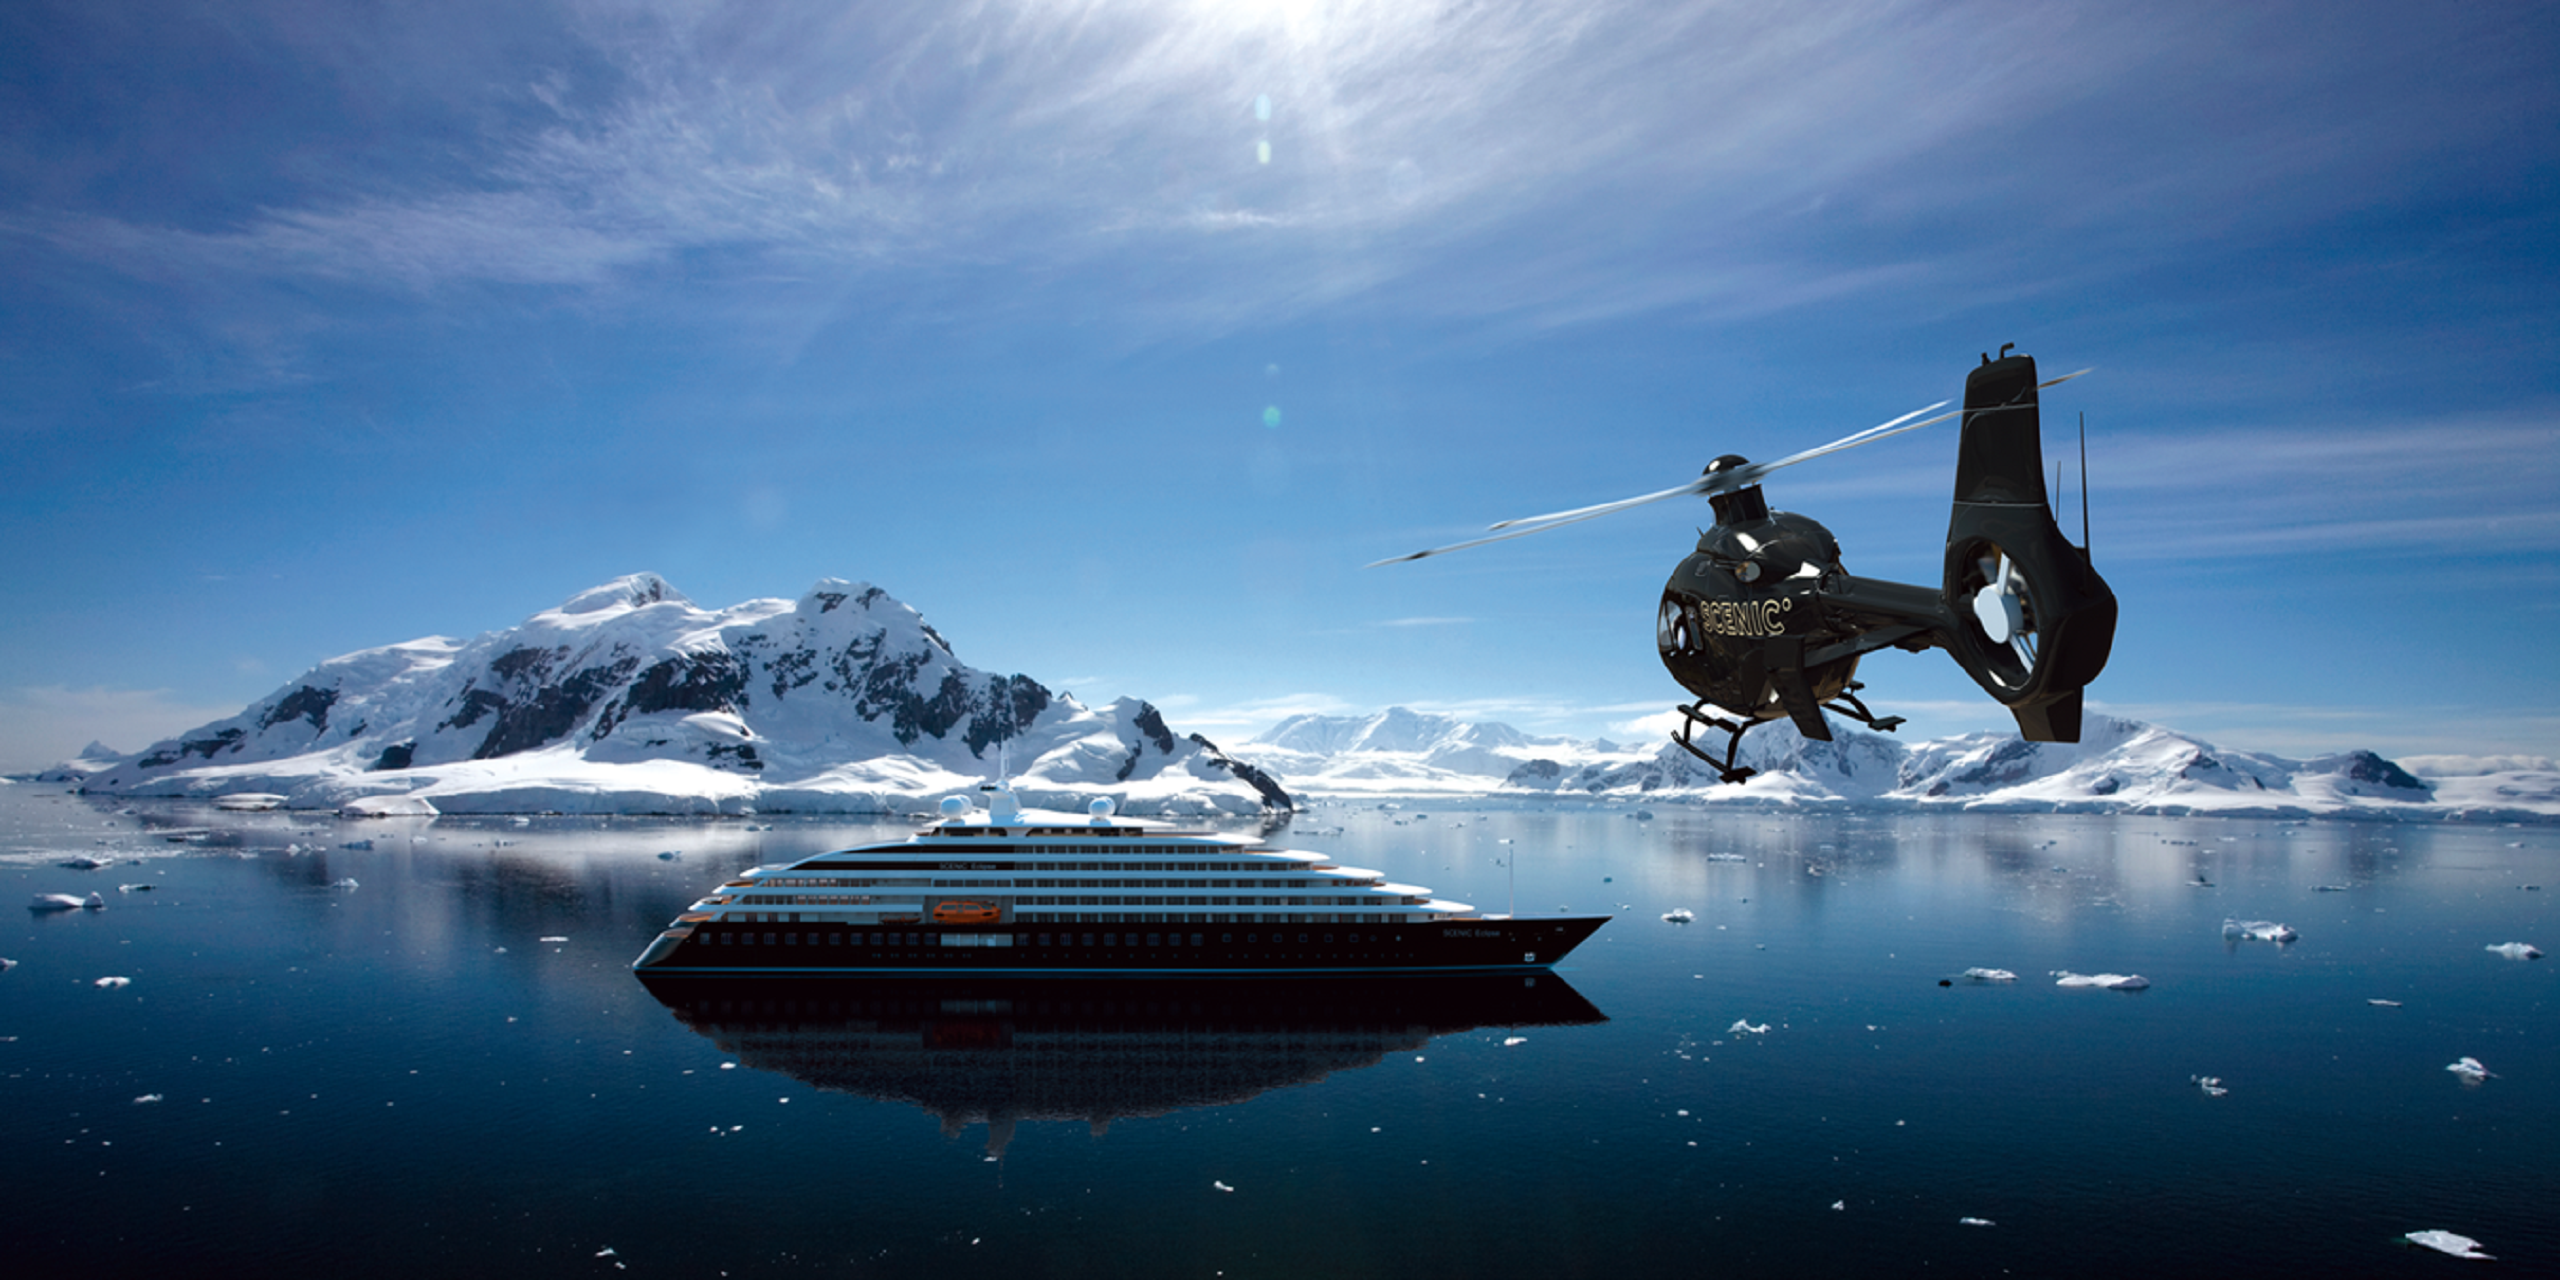 6 ways to tell you've booked a luxury cruise - The Points Guy